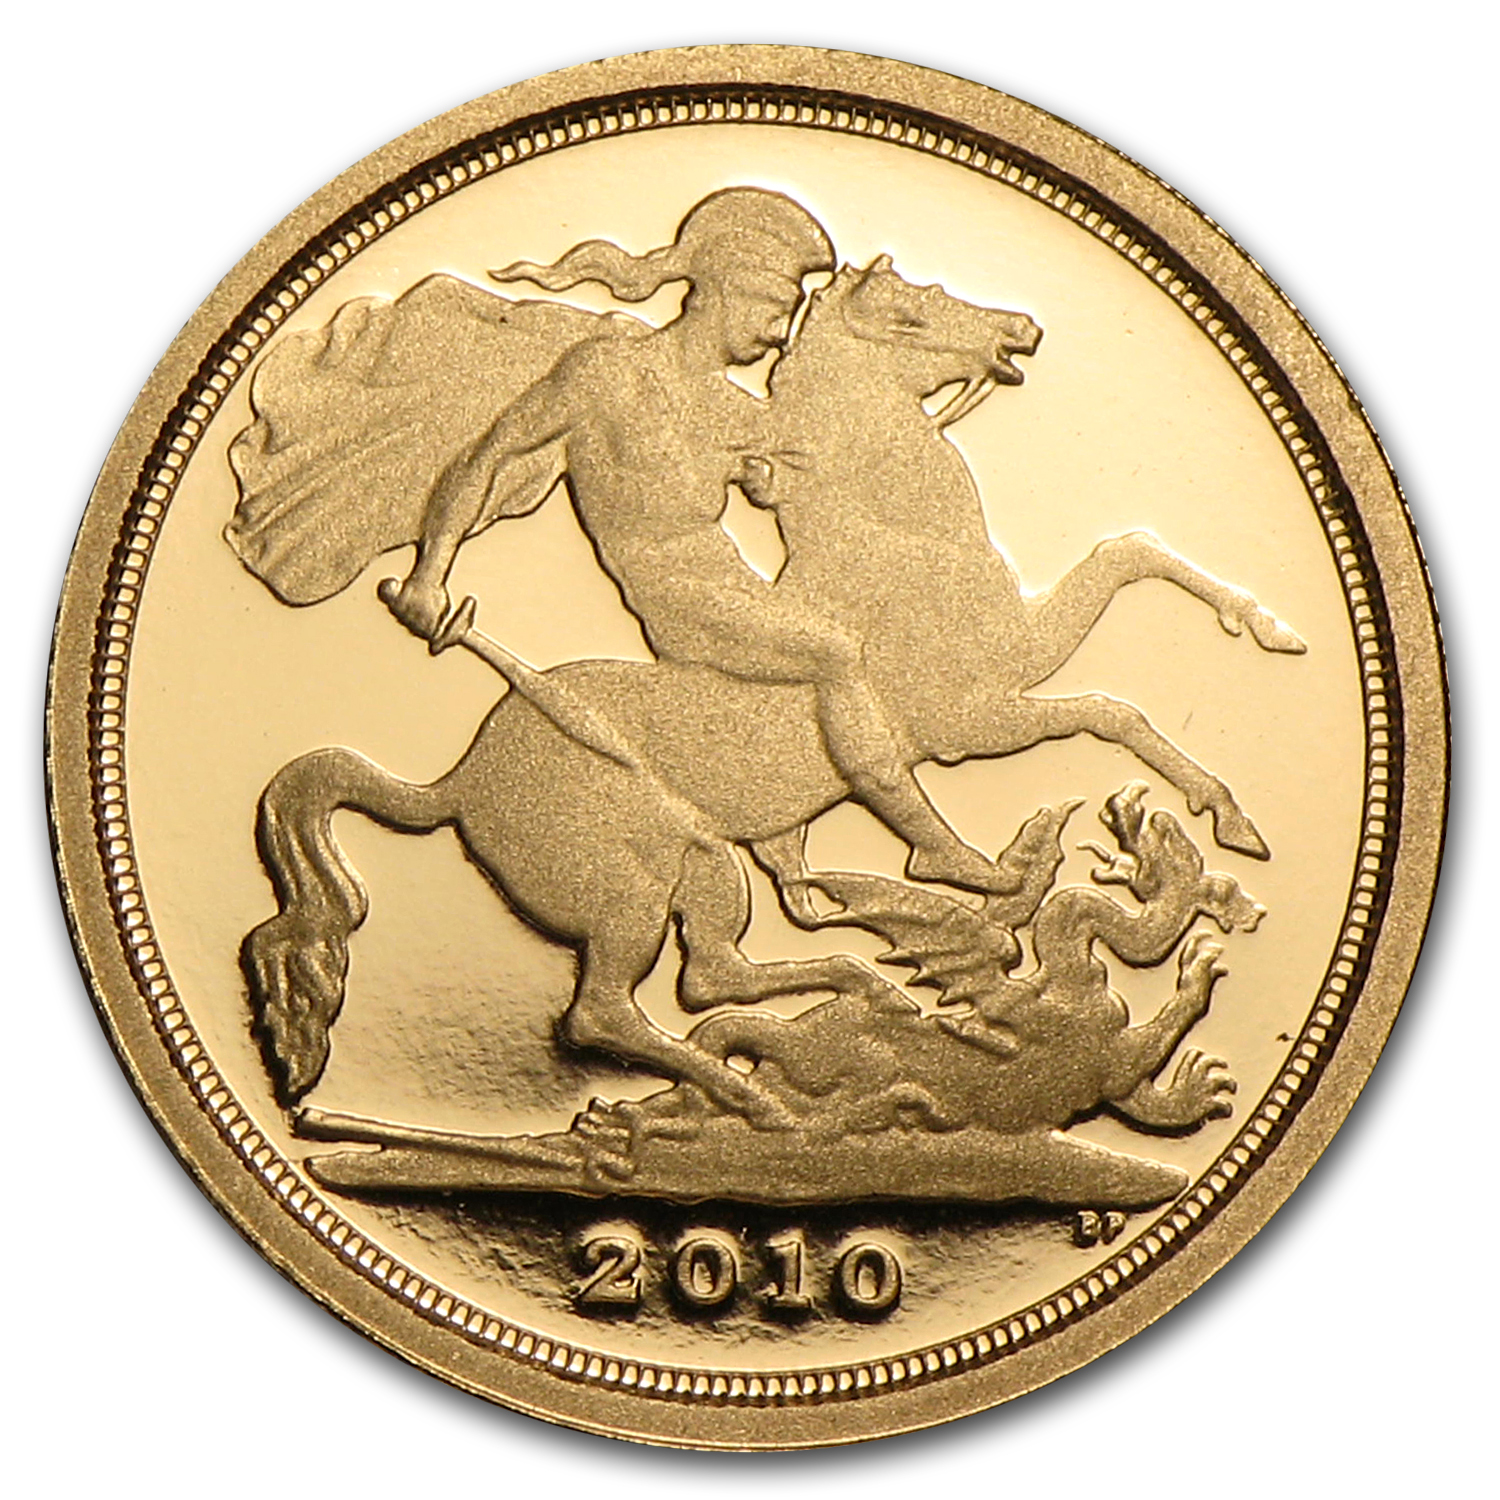 2010 Great Britain Proof Gold 1/4 Sovereign (w/box & COA)